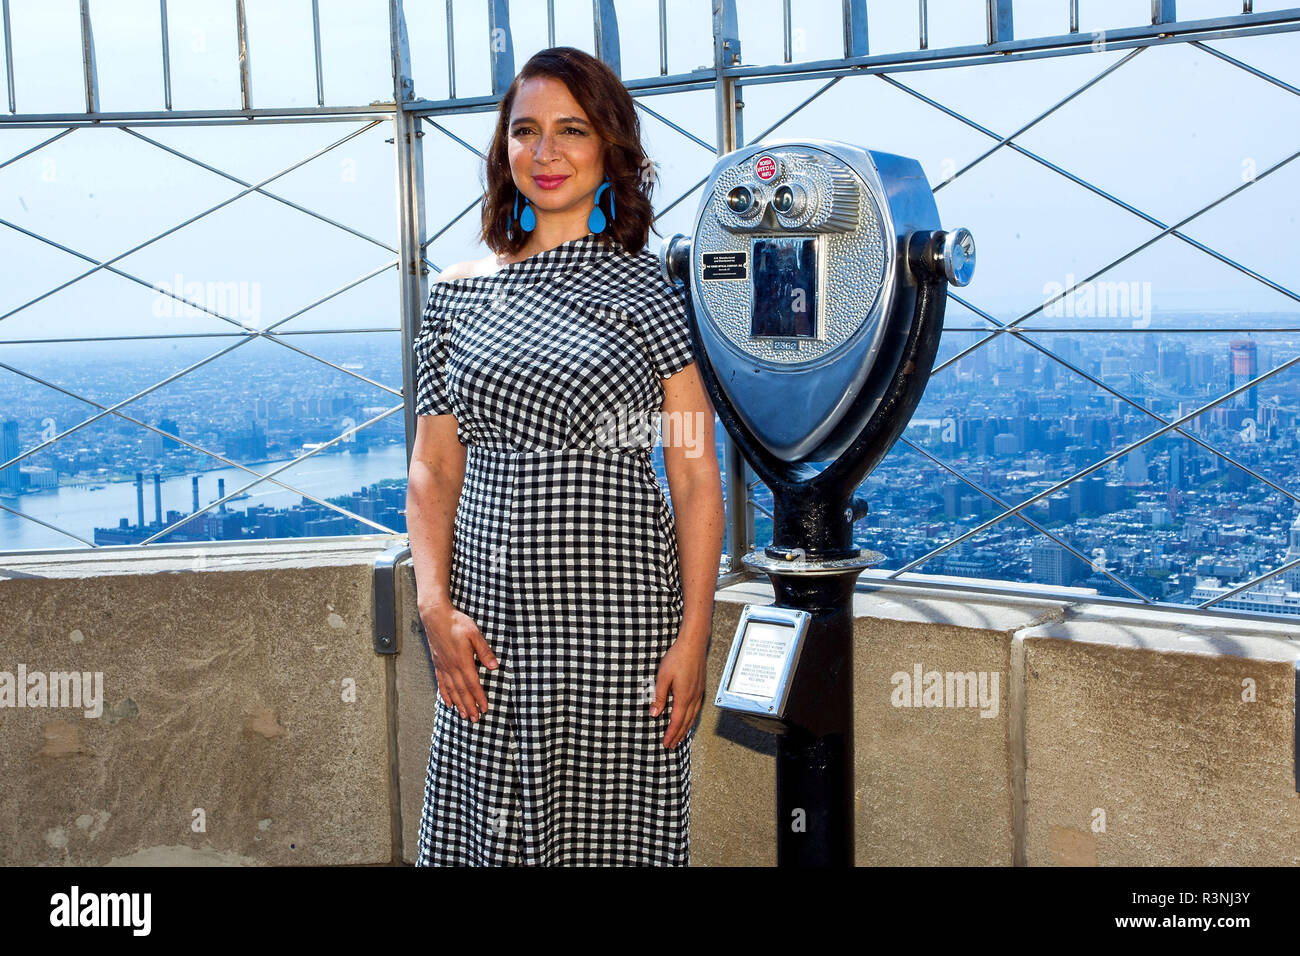 NEW YORK, NY - JULY 17:  Actress Maya Rudolph of the film 'The Emoji Movie' poses for a photo to celebrate World Emoji Day at The Empire State Building on July 17, 2017 in New York City.  (Photo by Steve Mack/S.D. Mack Pictures) - Stock Image